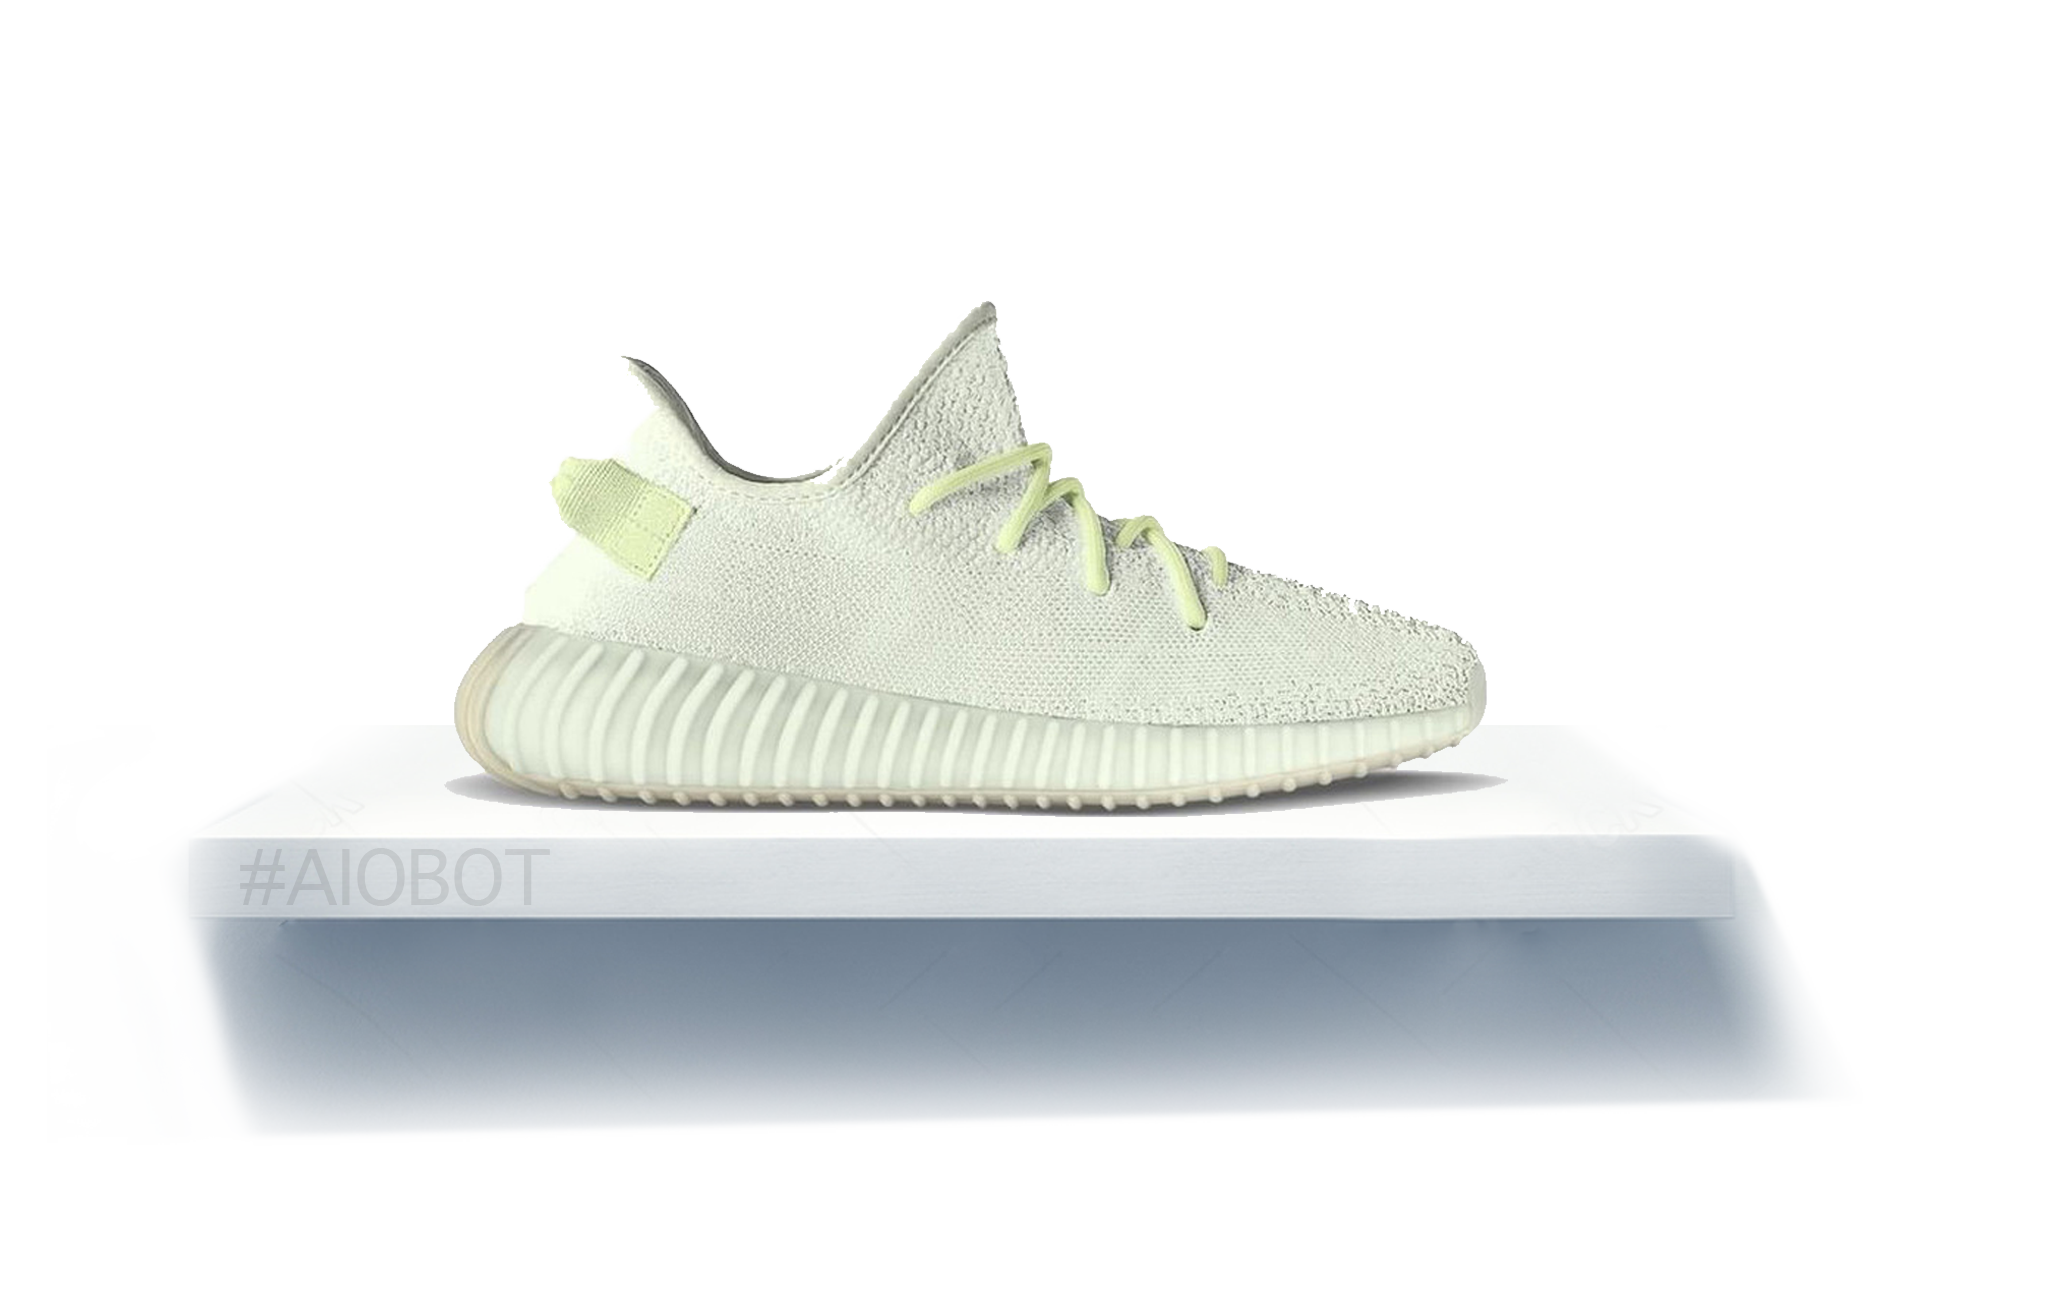 167a3e9f Yeezy Boost 350 V2 Butter Official Release date and Information ...